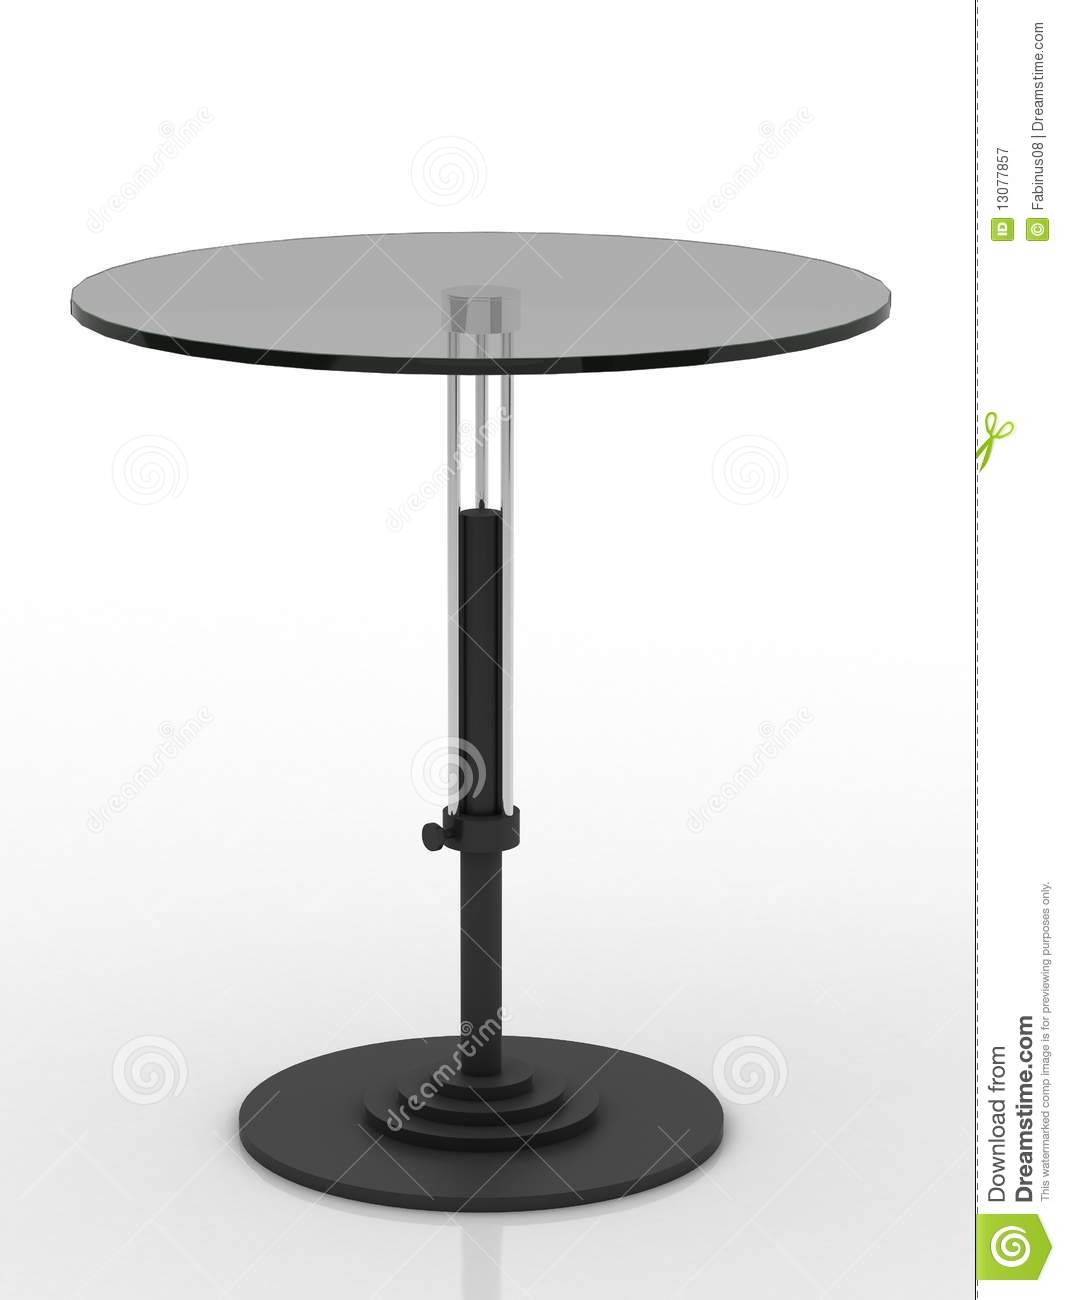 Modern telescopic coffee table royalty free stock photography image 13077857 - Telescopic coffee table ...